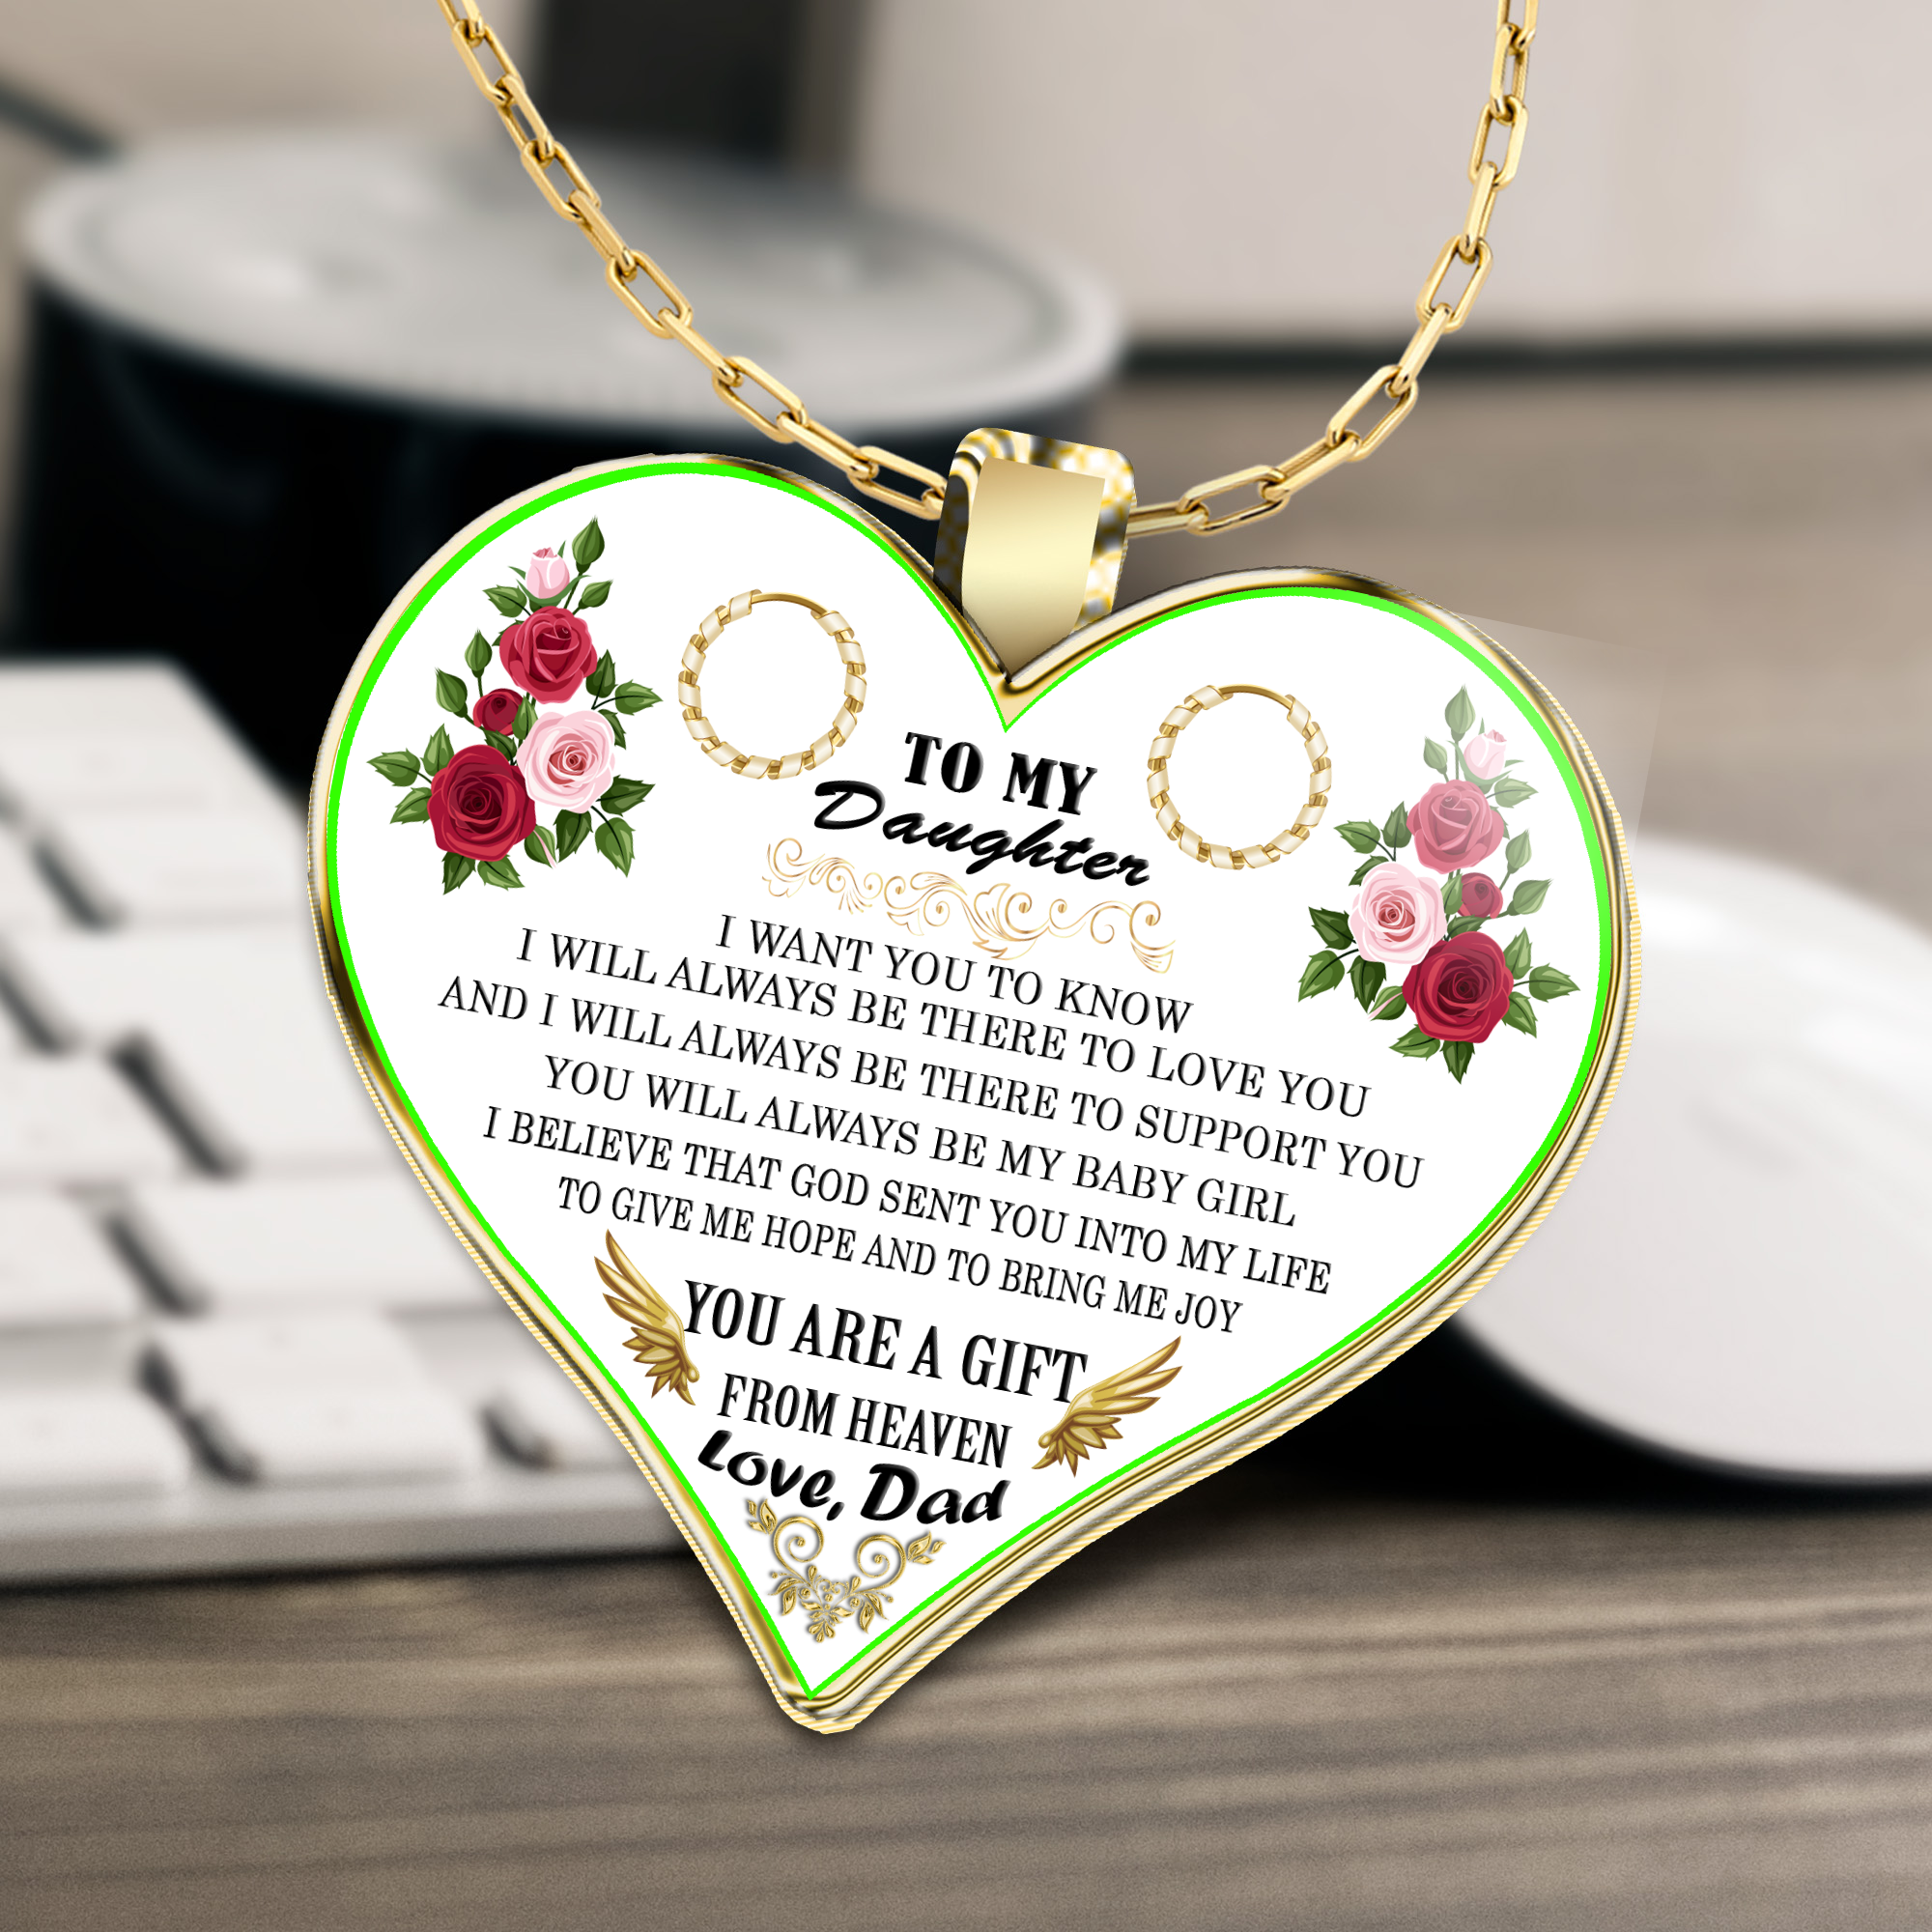 To My Daughter Necklace Best Gifts For Birthday Special Necklacegift